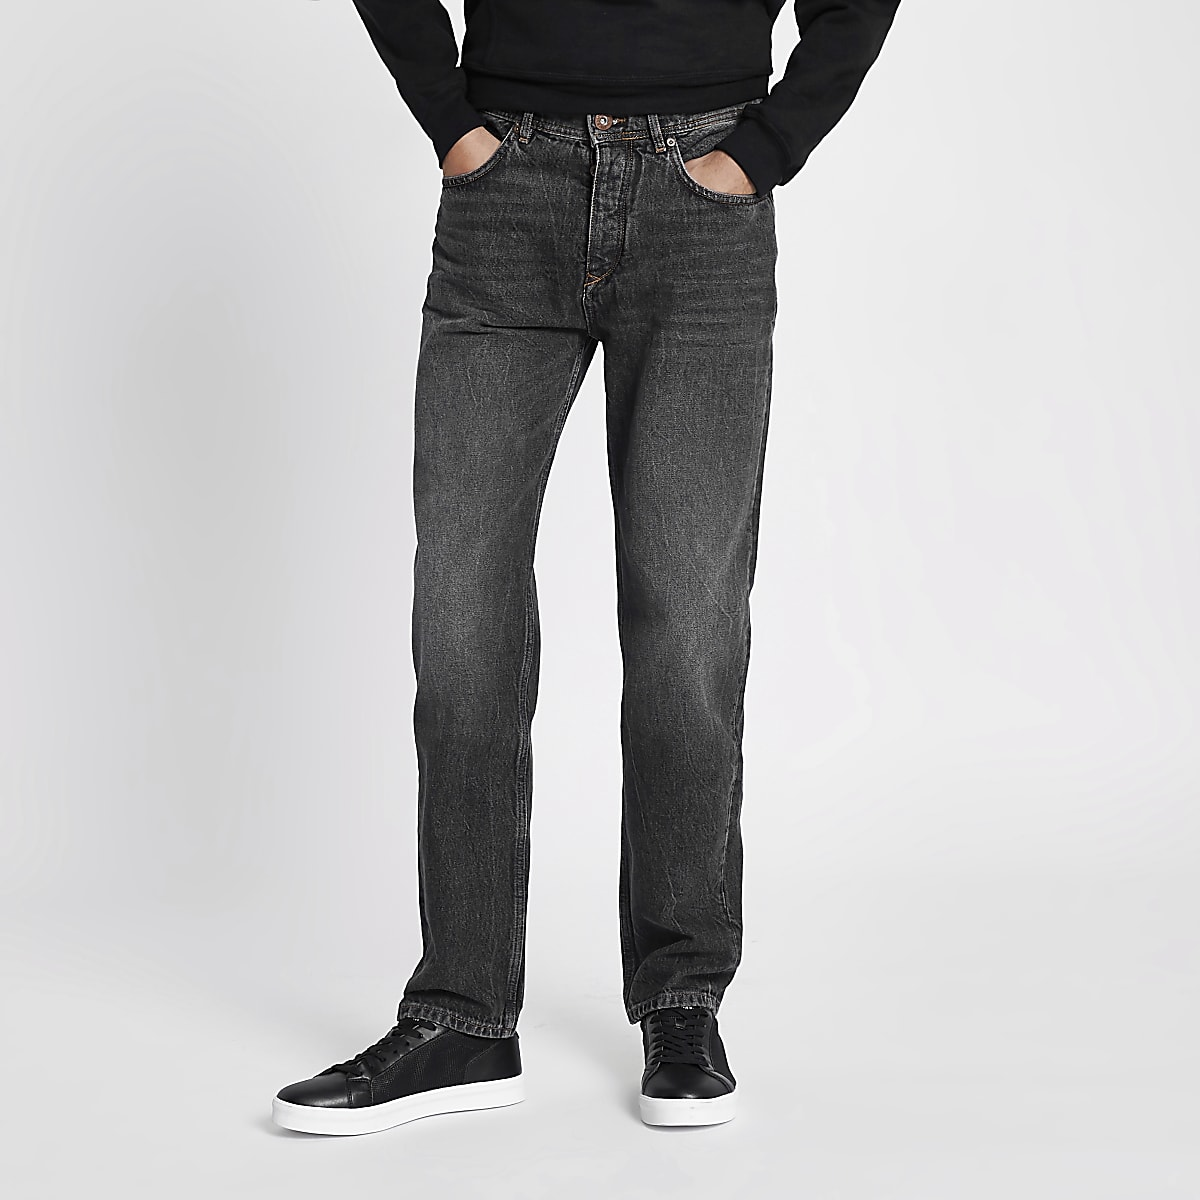 Black washed Dean standard jeans